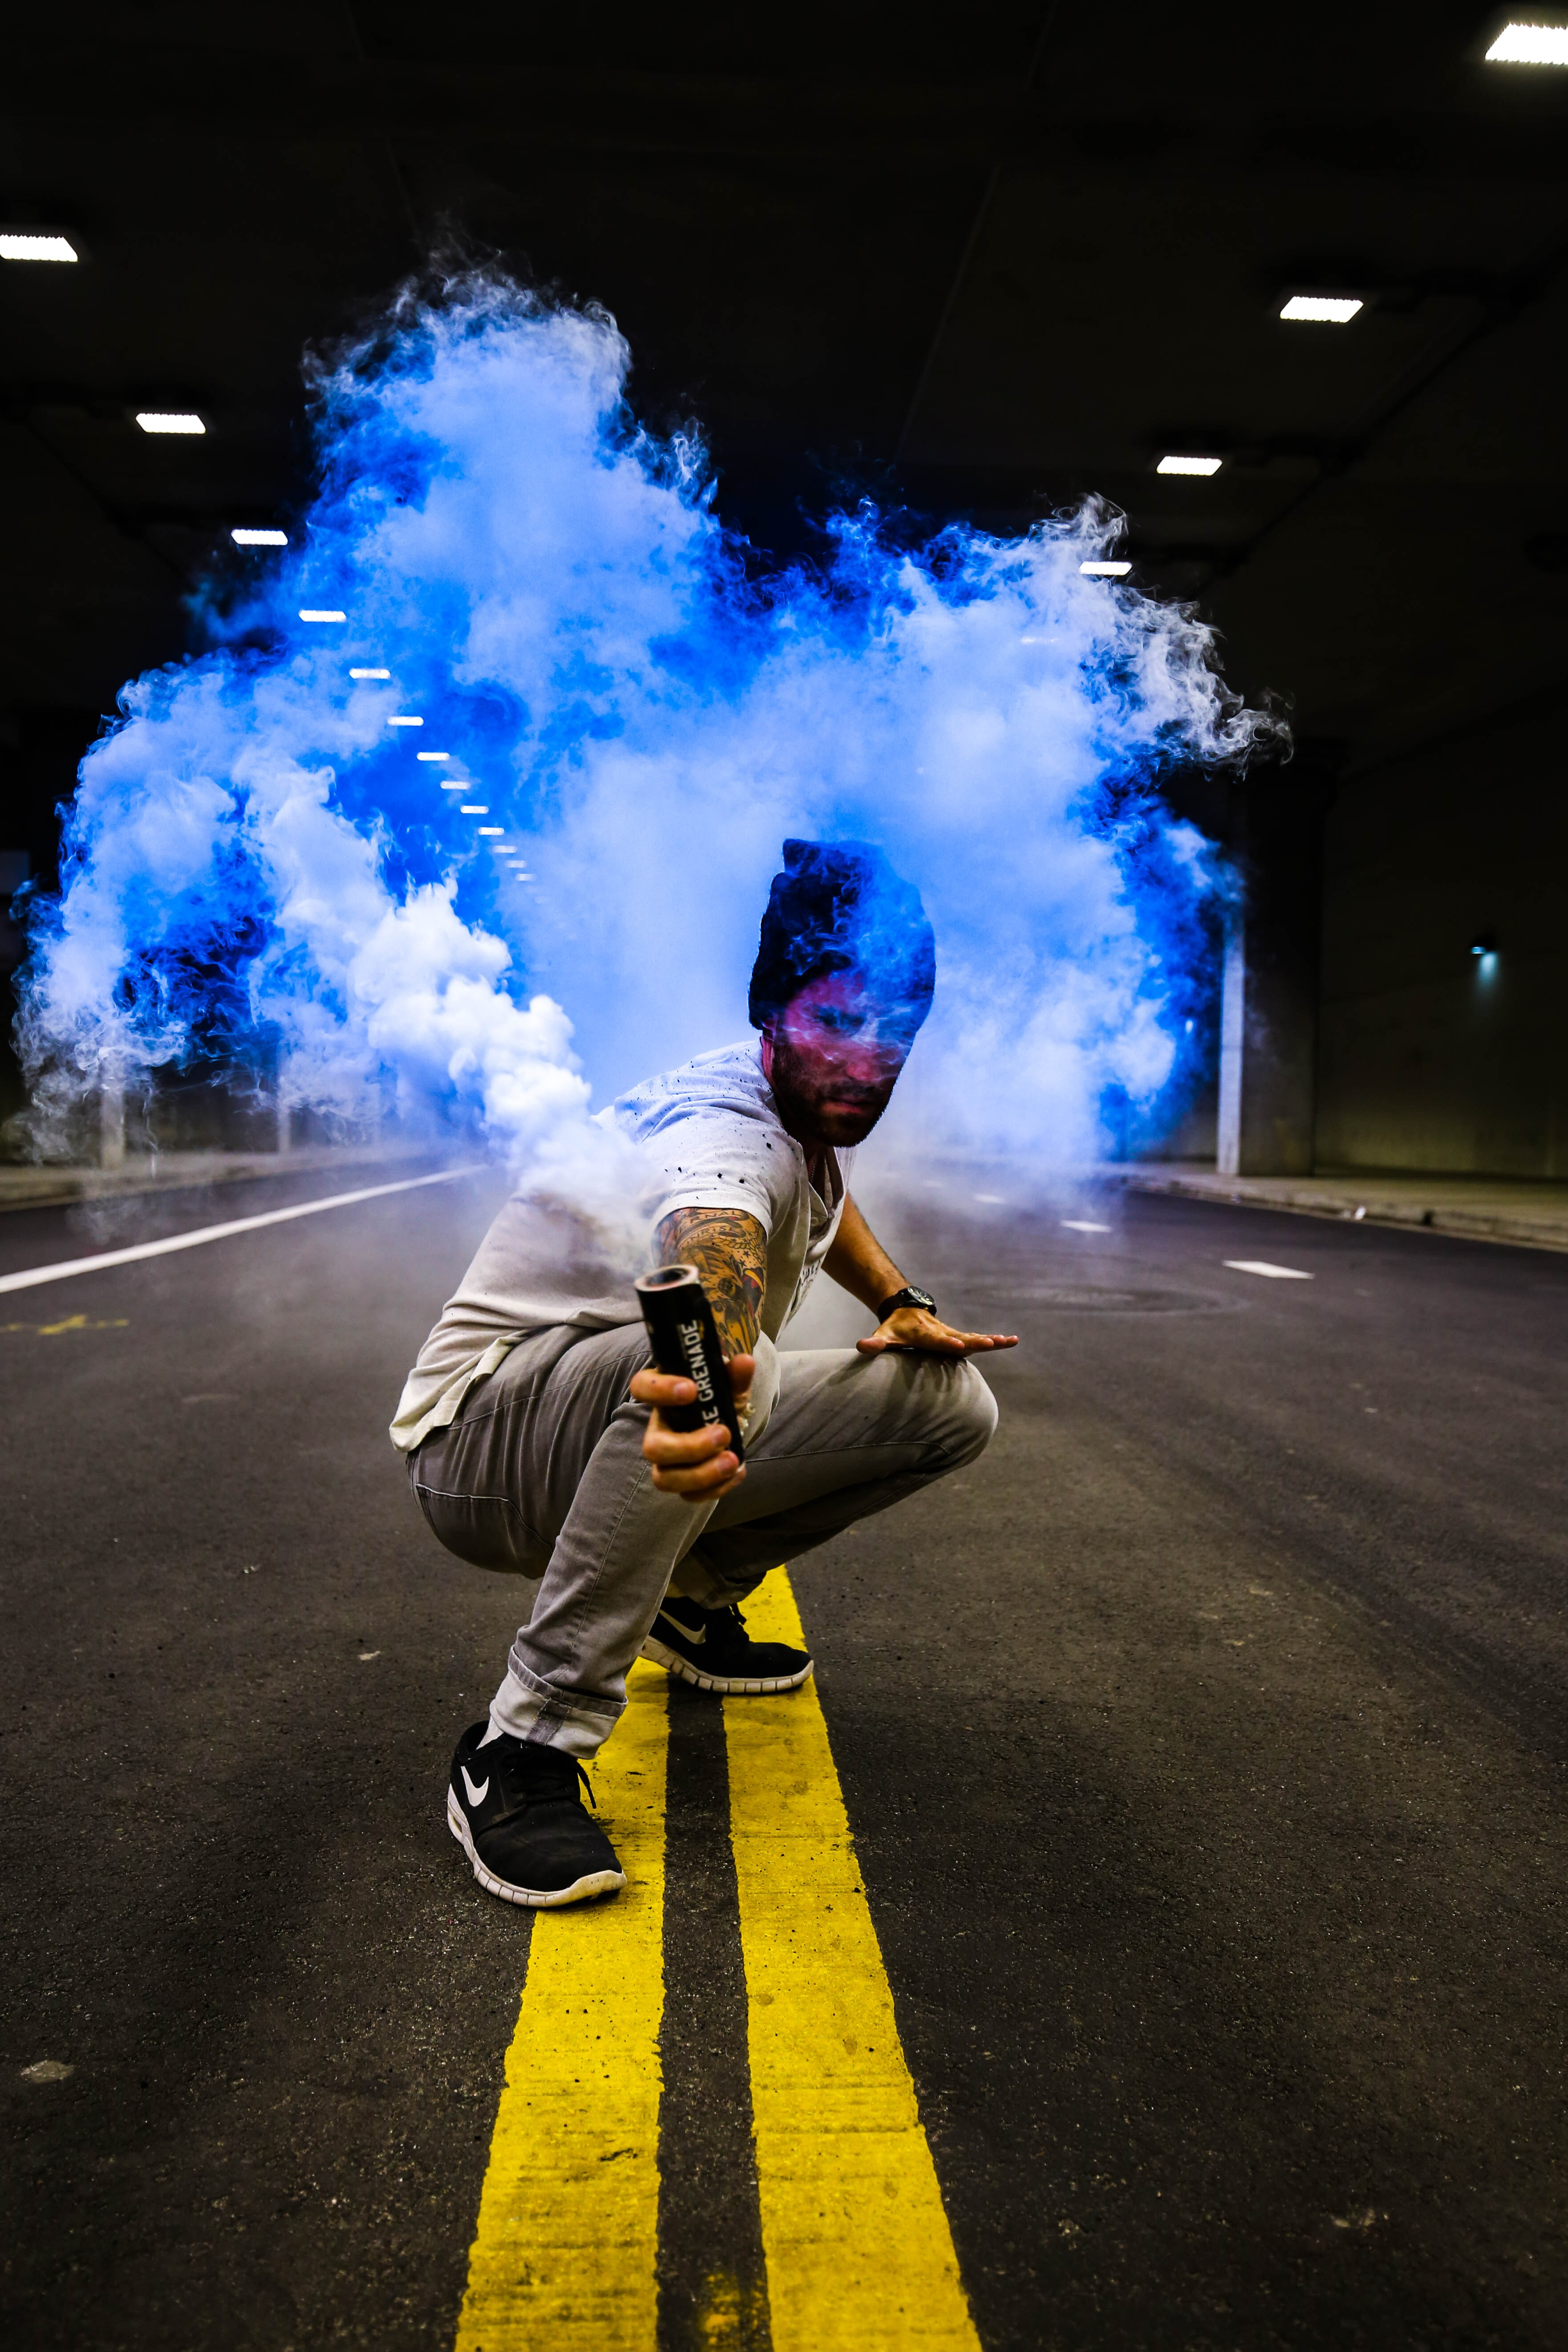 Person crouching in the street holding a blue smoke grenade